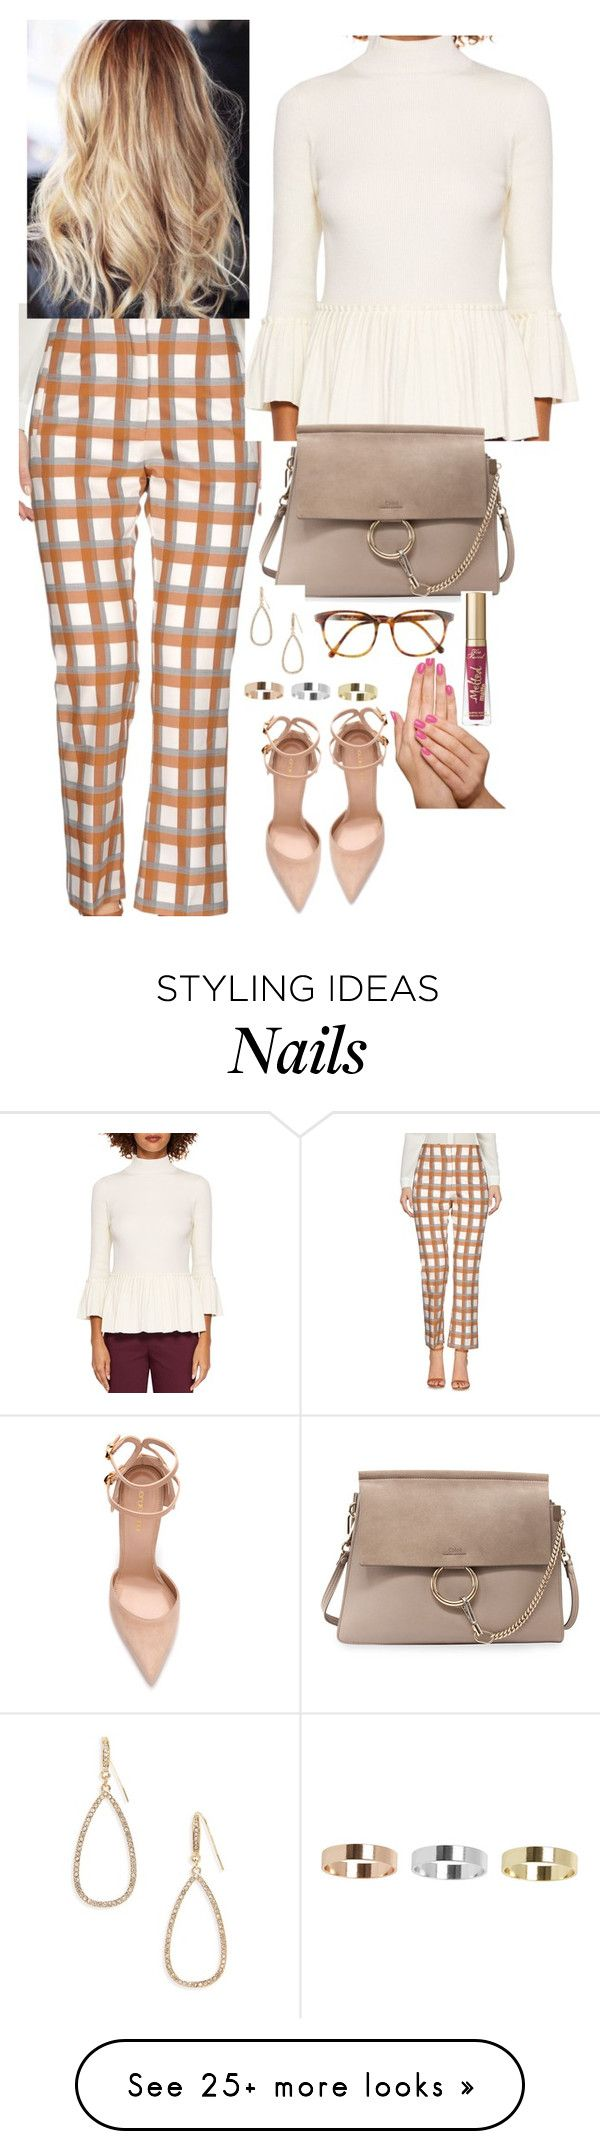 """""""Untitled #1750"""" by inthesun707 on Polyvore featuring jucca, Sergio Rossi, Ted Baker, Chloé, Topshop, Too Faced Cosmetics, Piggy Paint, Panacea and Steven Alan"""